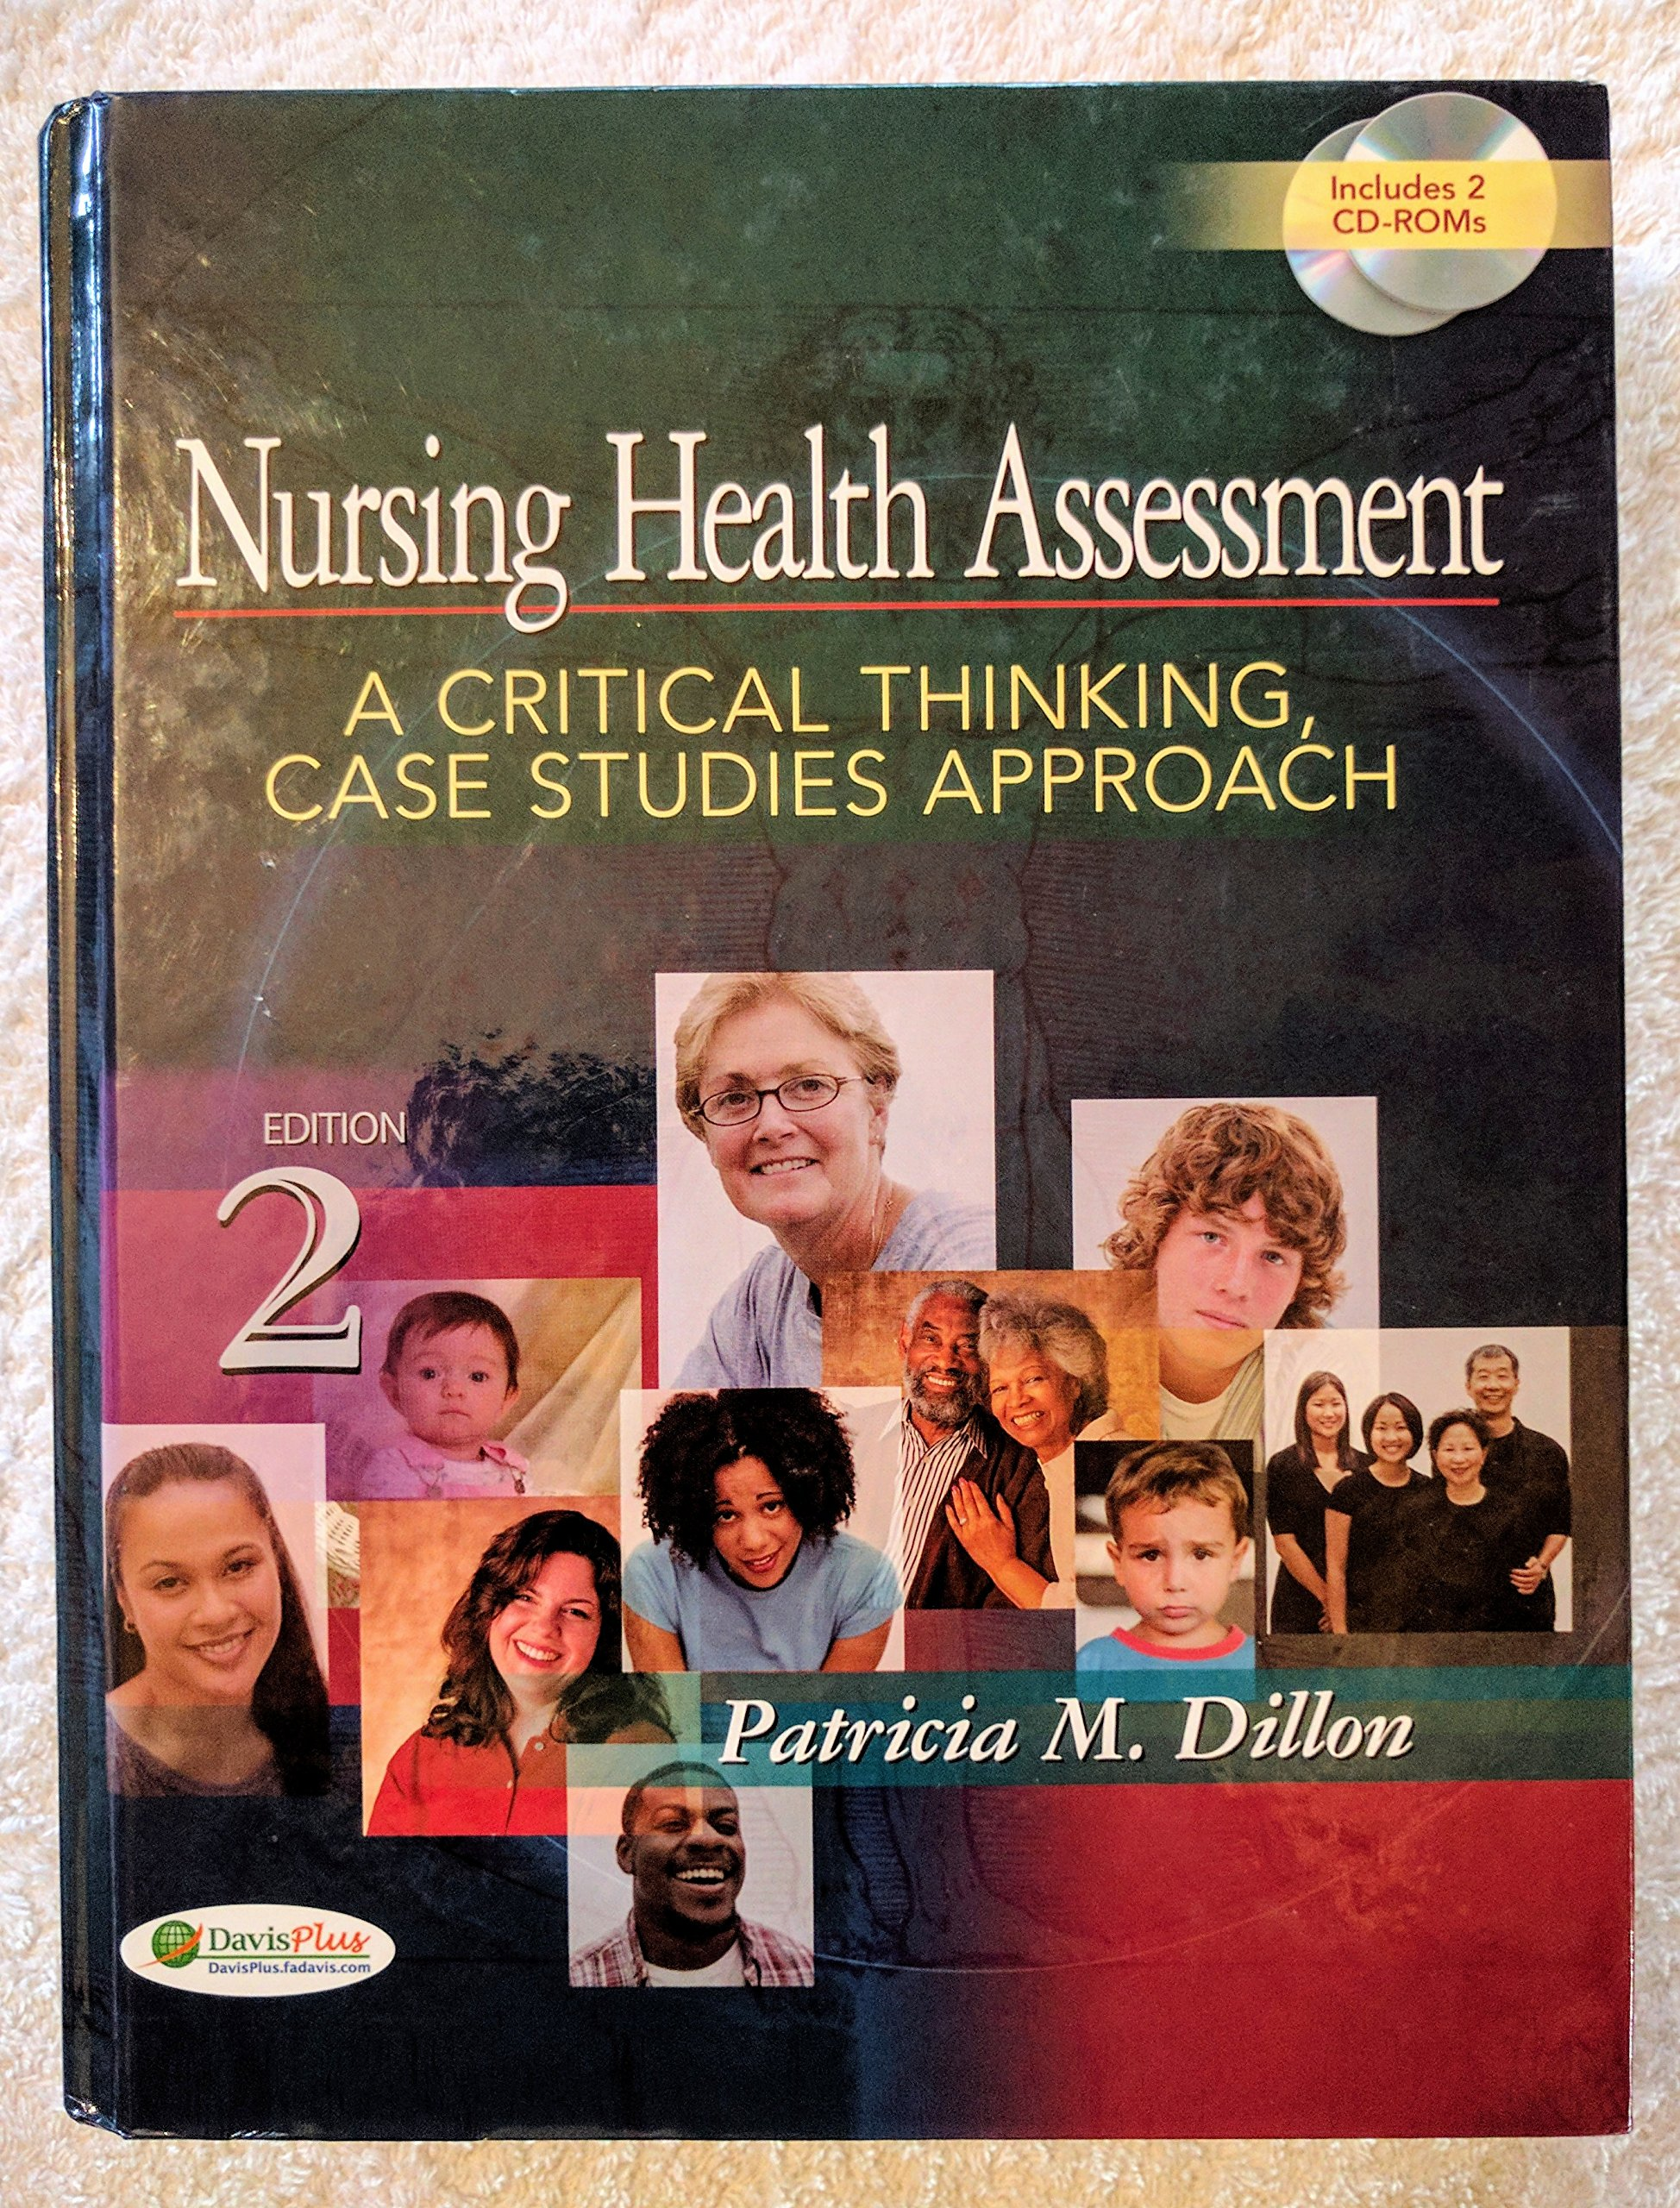 Nursing Health Assessment: A Critical Thinking, Case Studies Approach, 2nd Edition